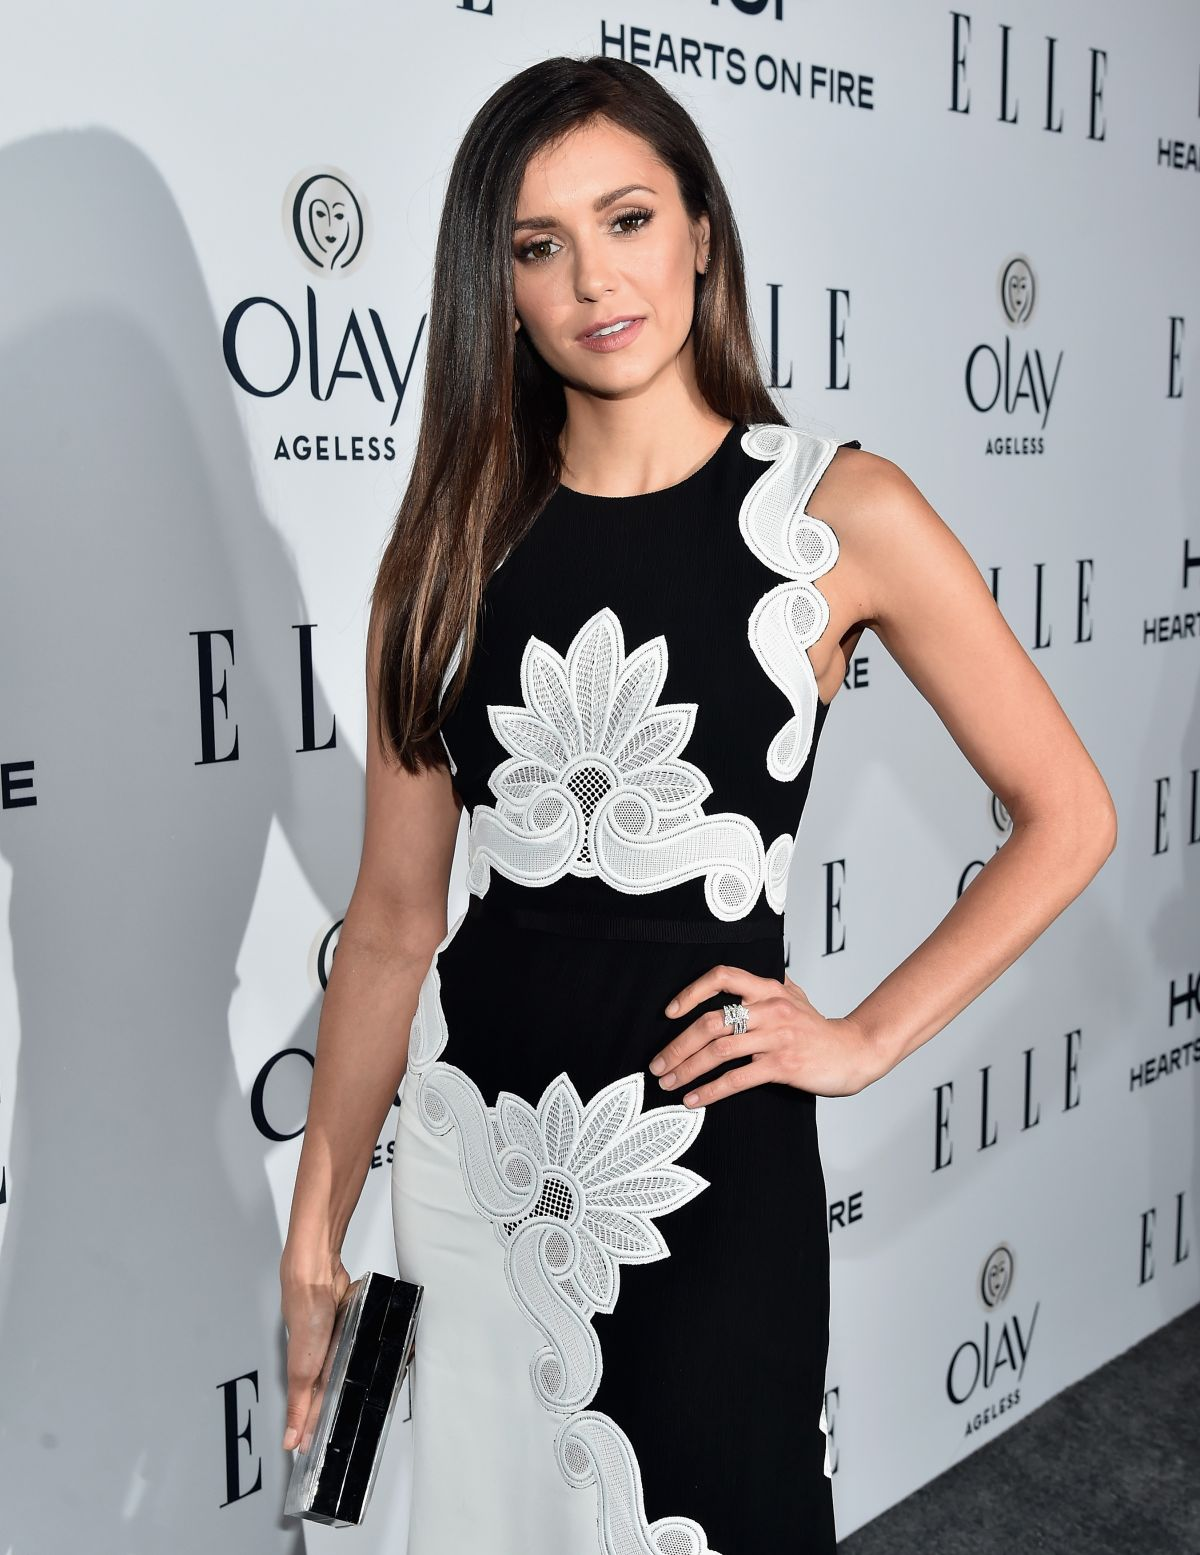 NINA DOBREV at Elle